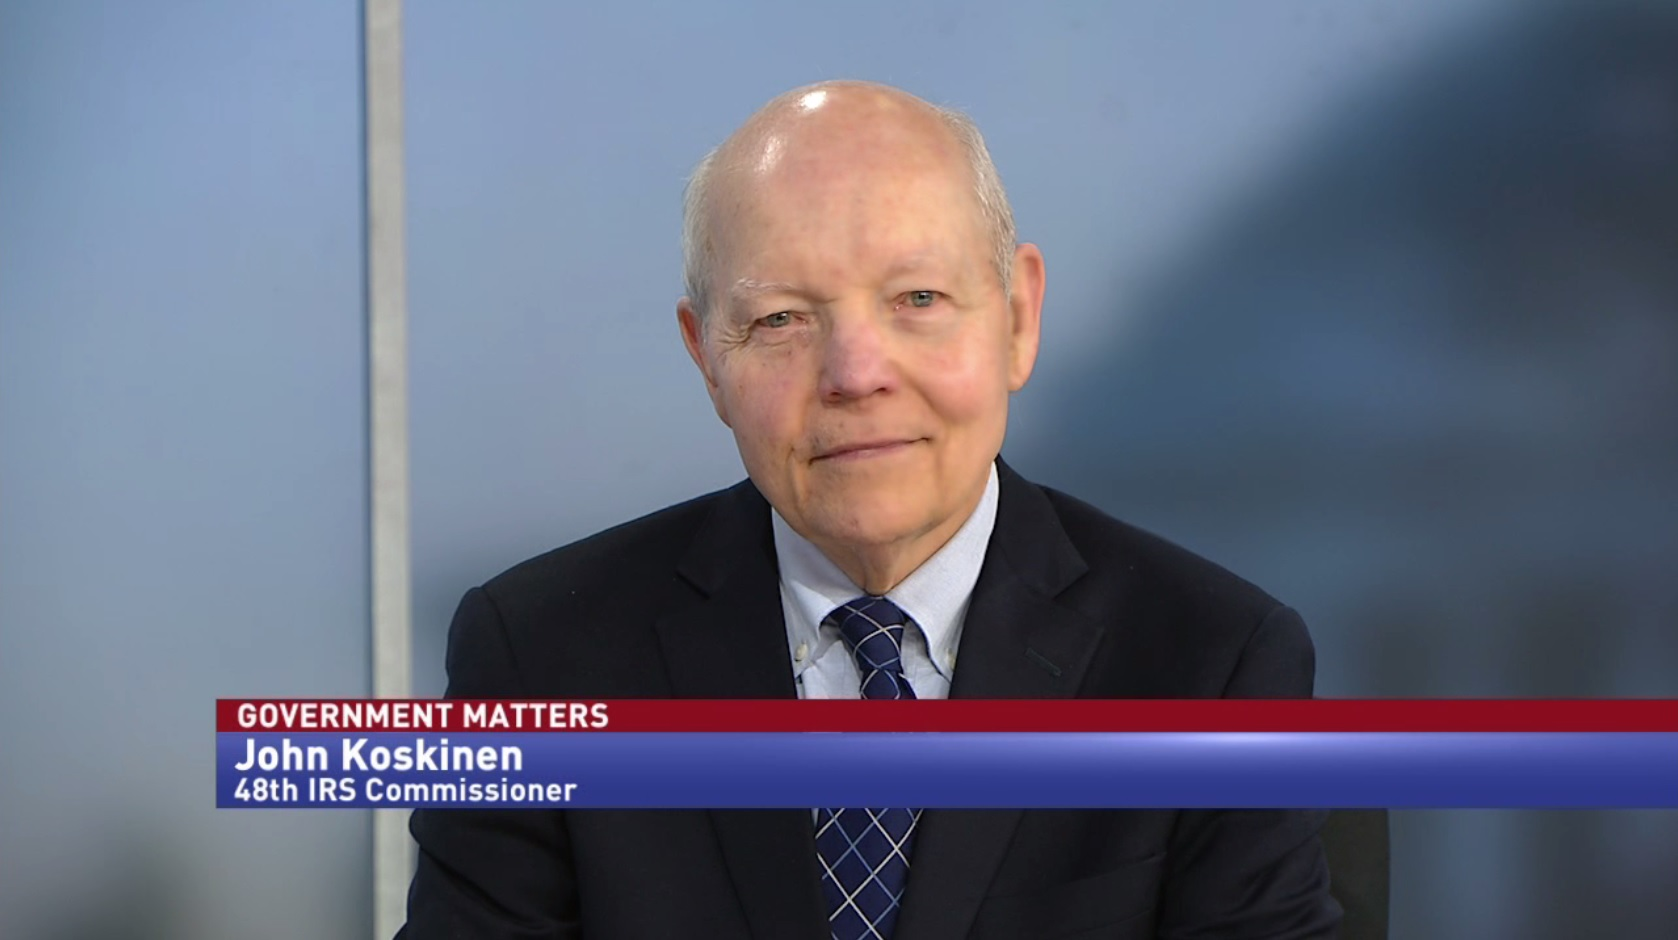 Exit interview with John Koskinen